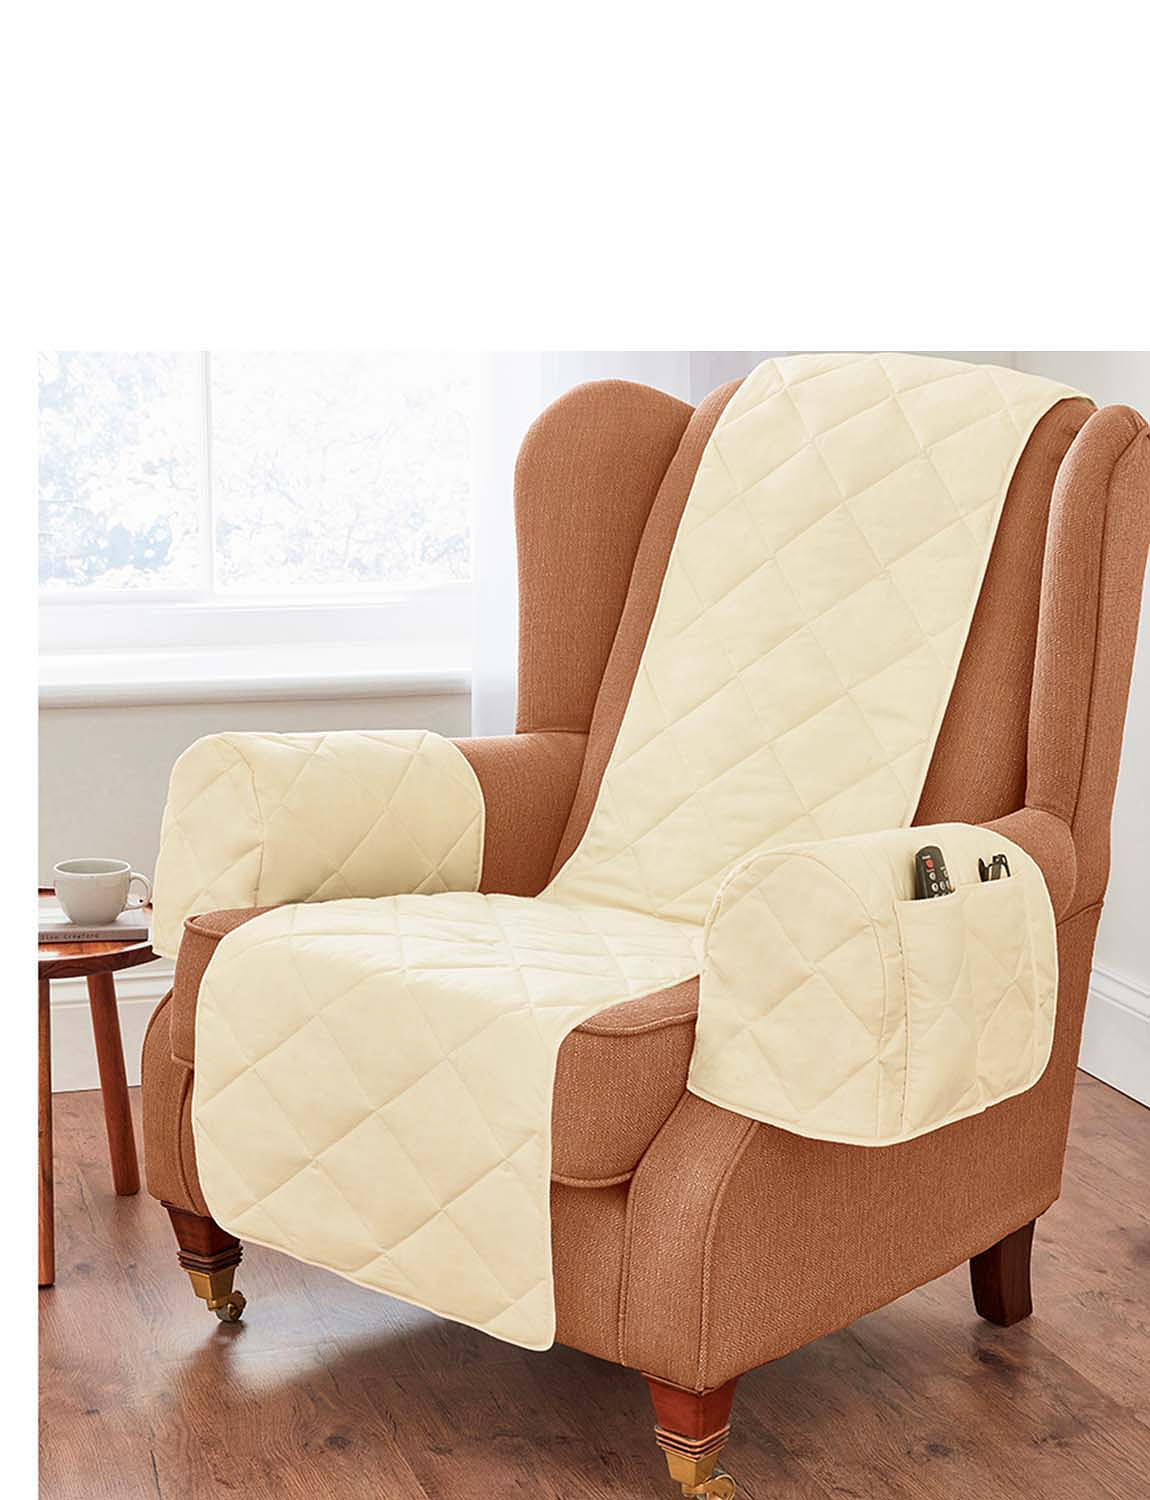 Plain Beige Quilted Furniture Protector  - Beige